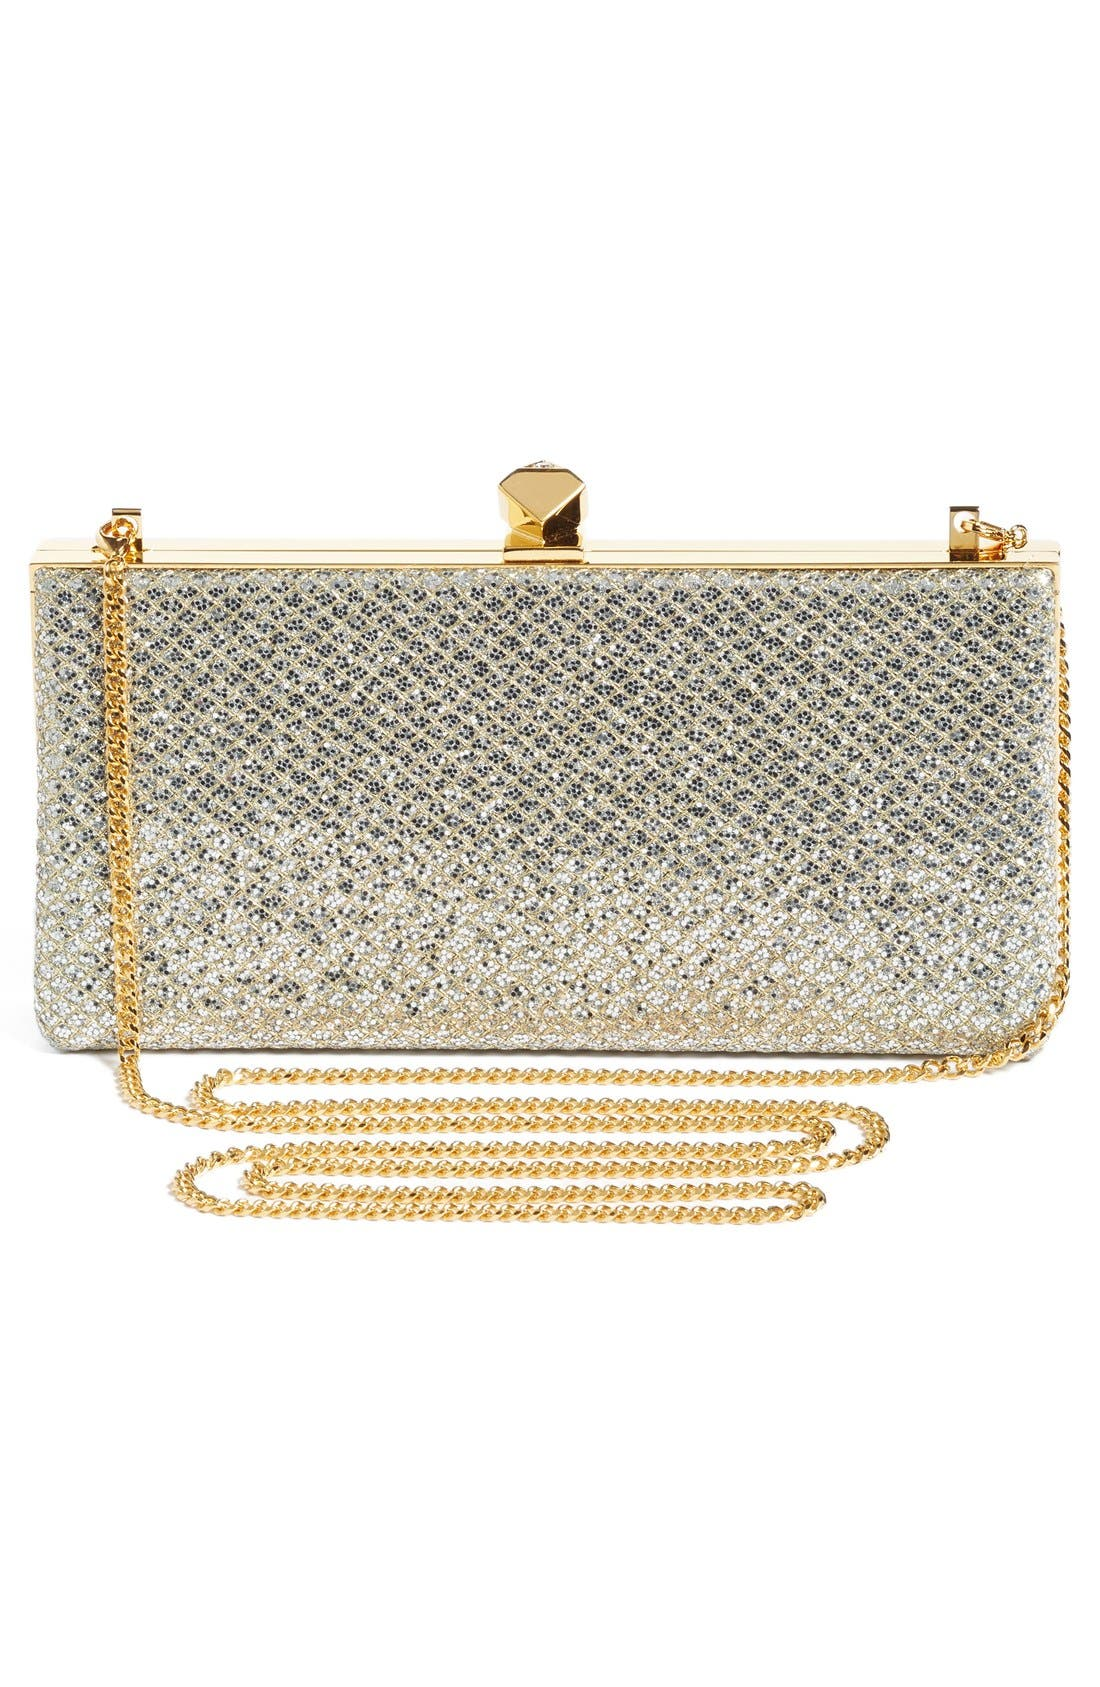 Alternate Image 3  - Jimmy Choo Celeste Glitter Frame Clutch